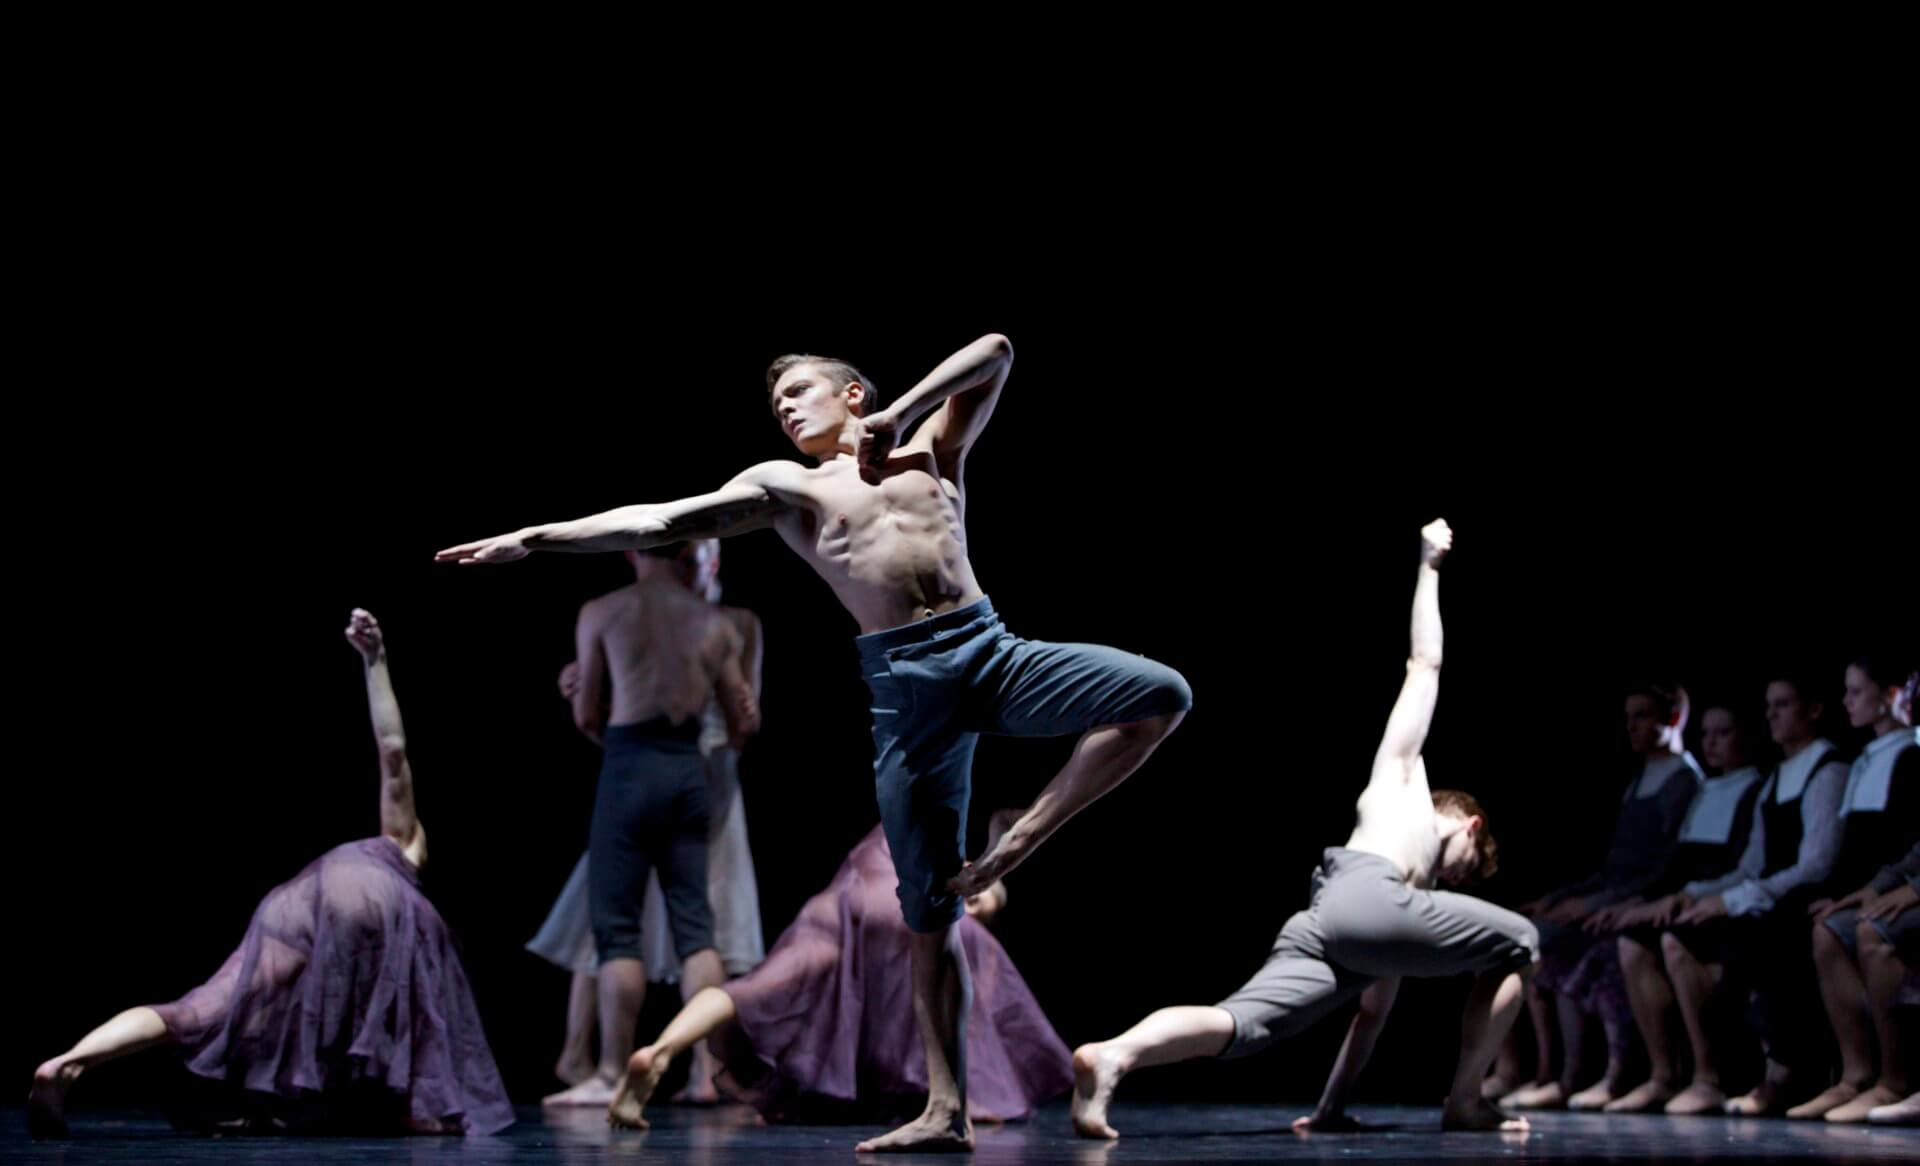 Jamiel Laurence dancing in the middle of the stage with dancers behind him